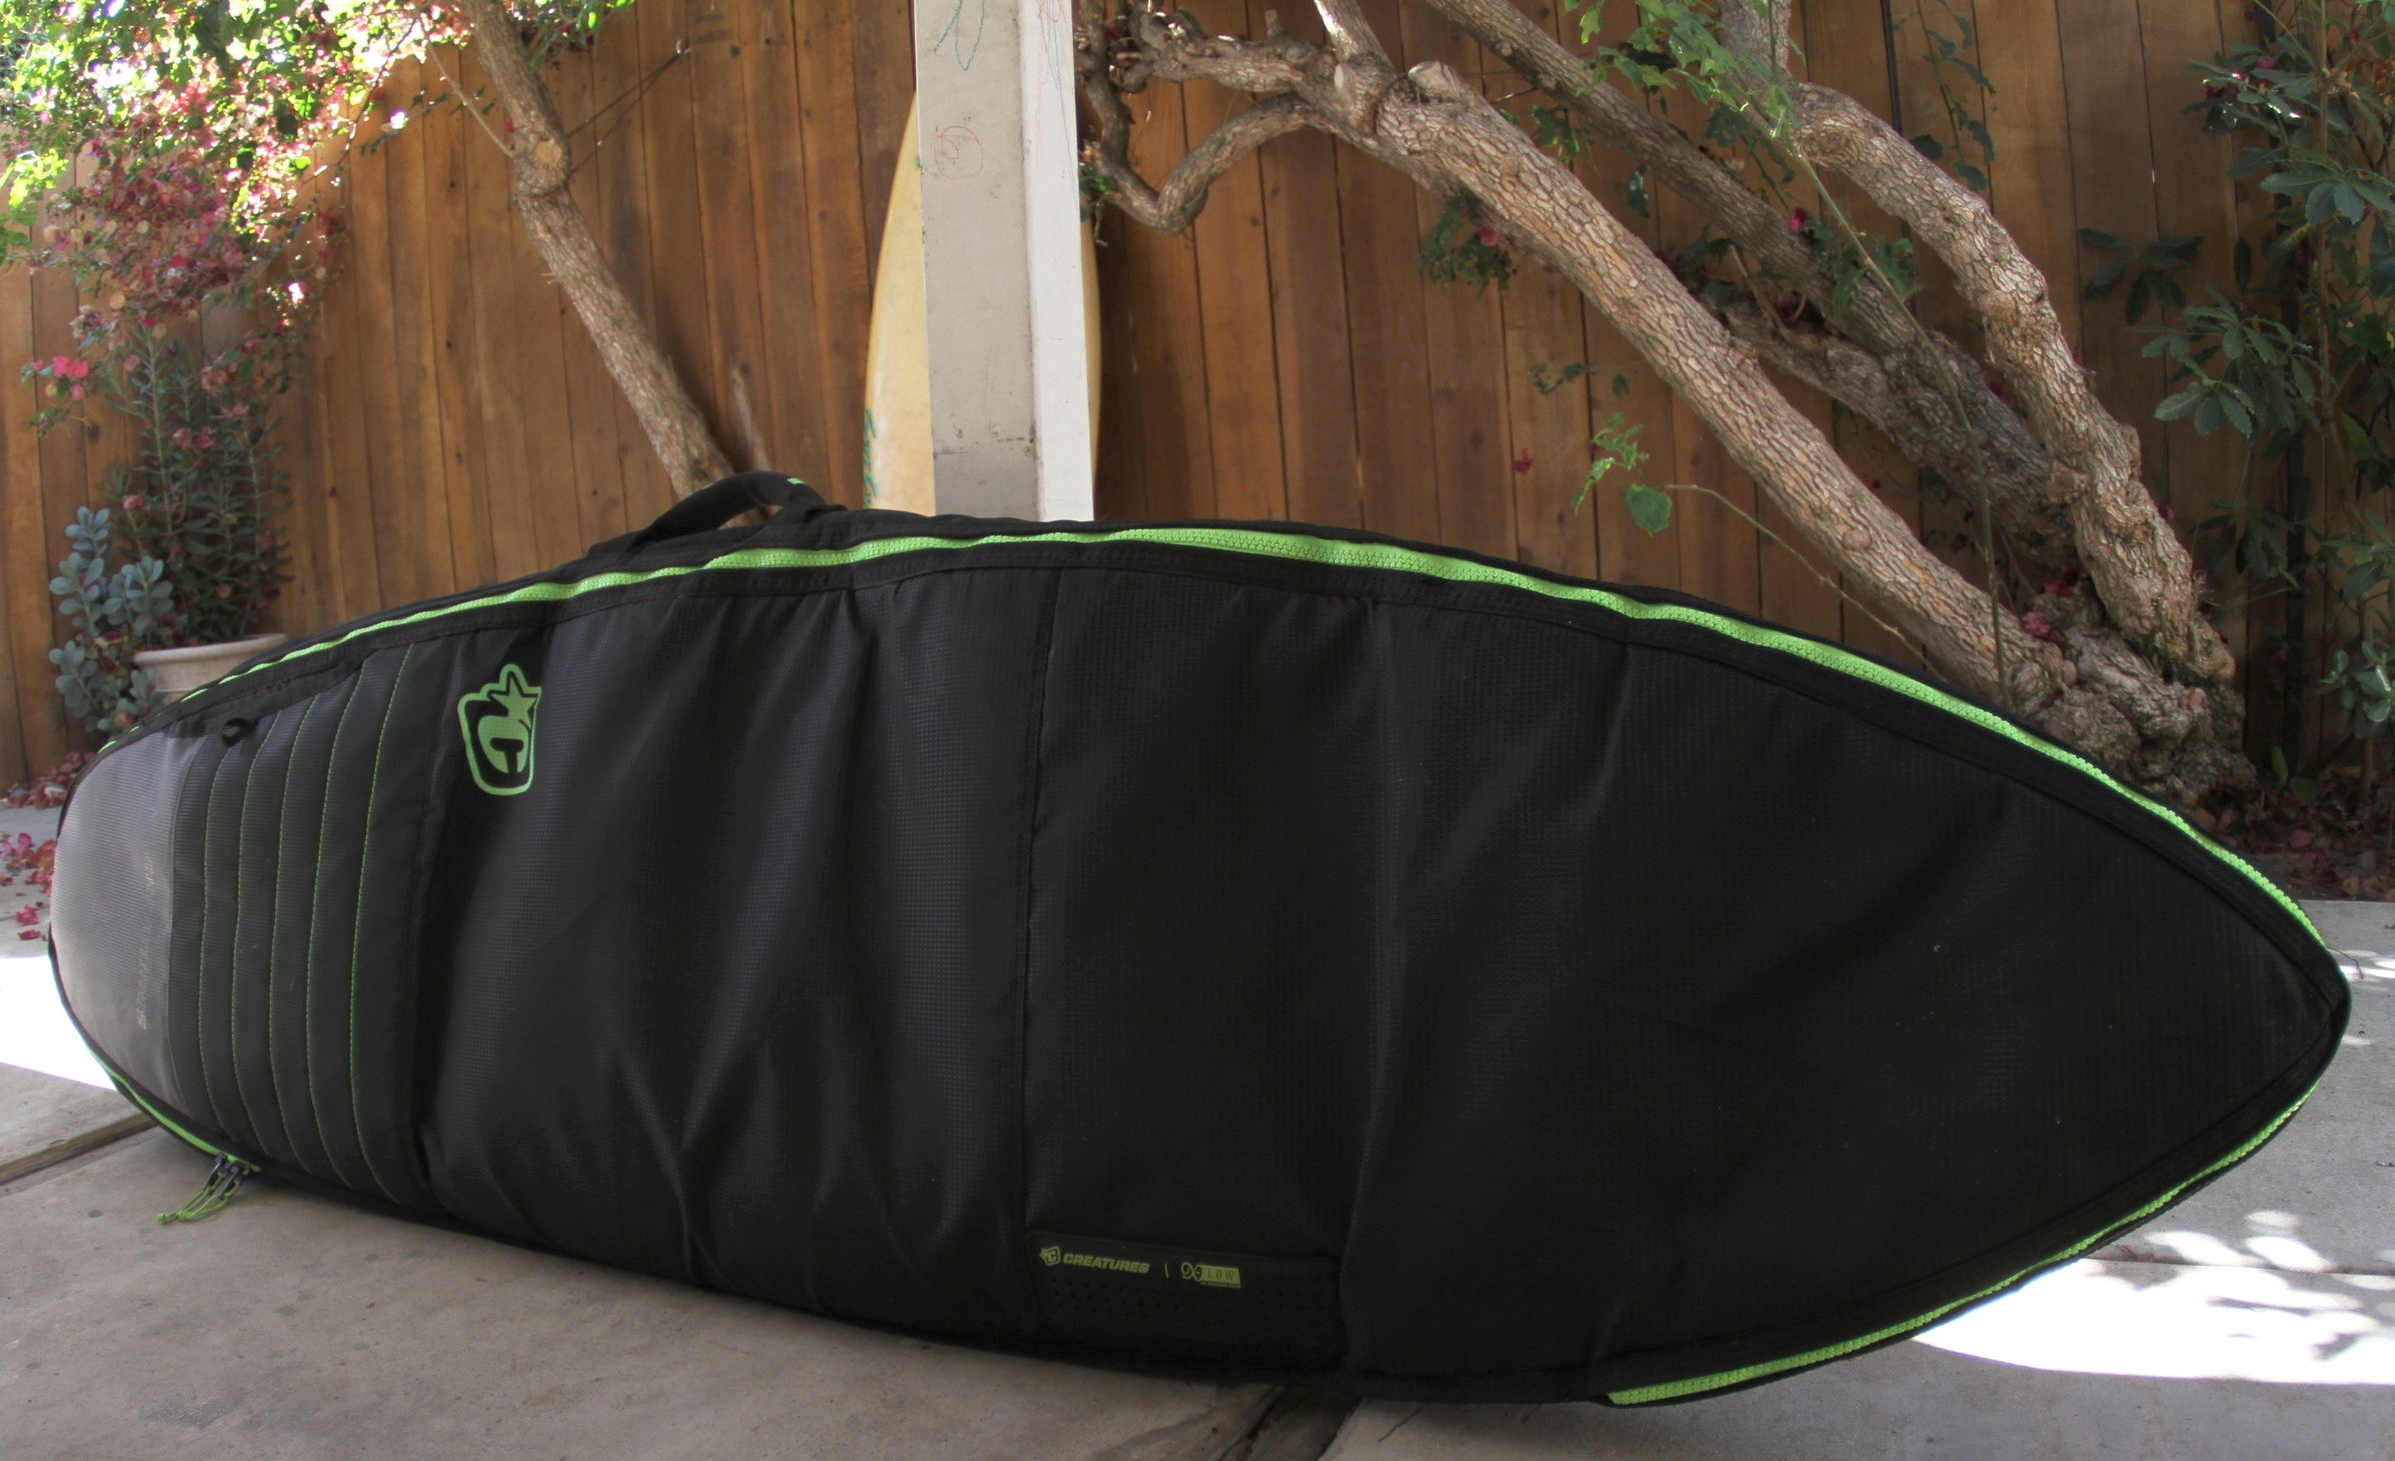 The 6'0 shortboard double filled with 2 boards.